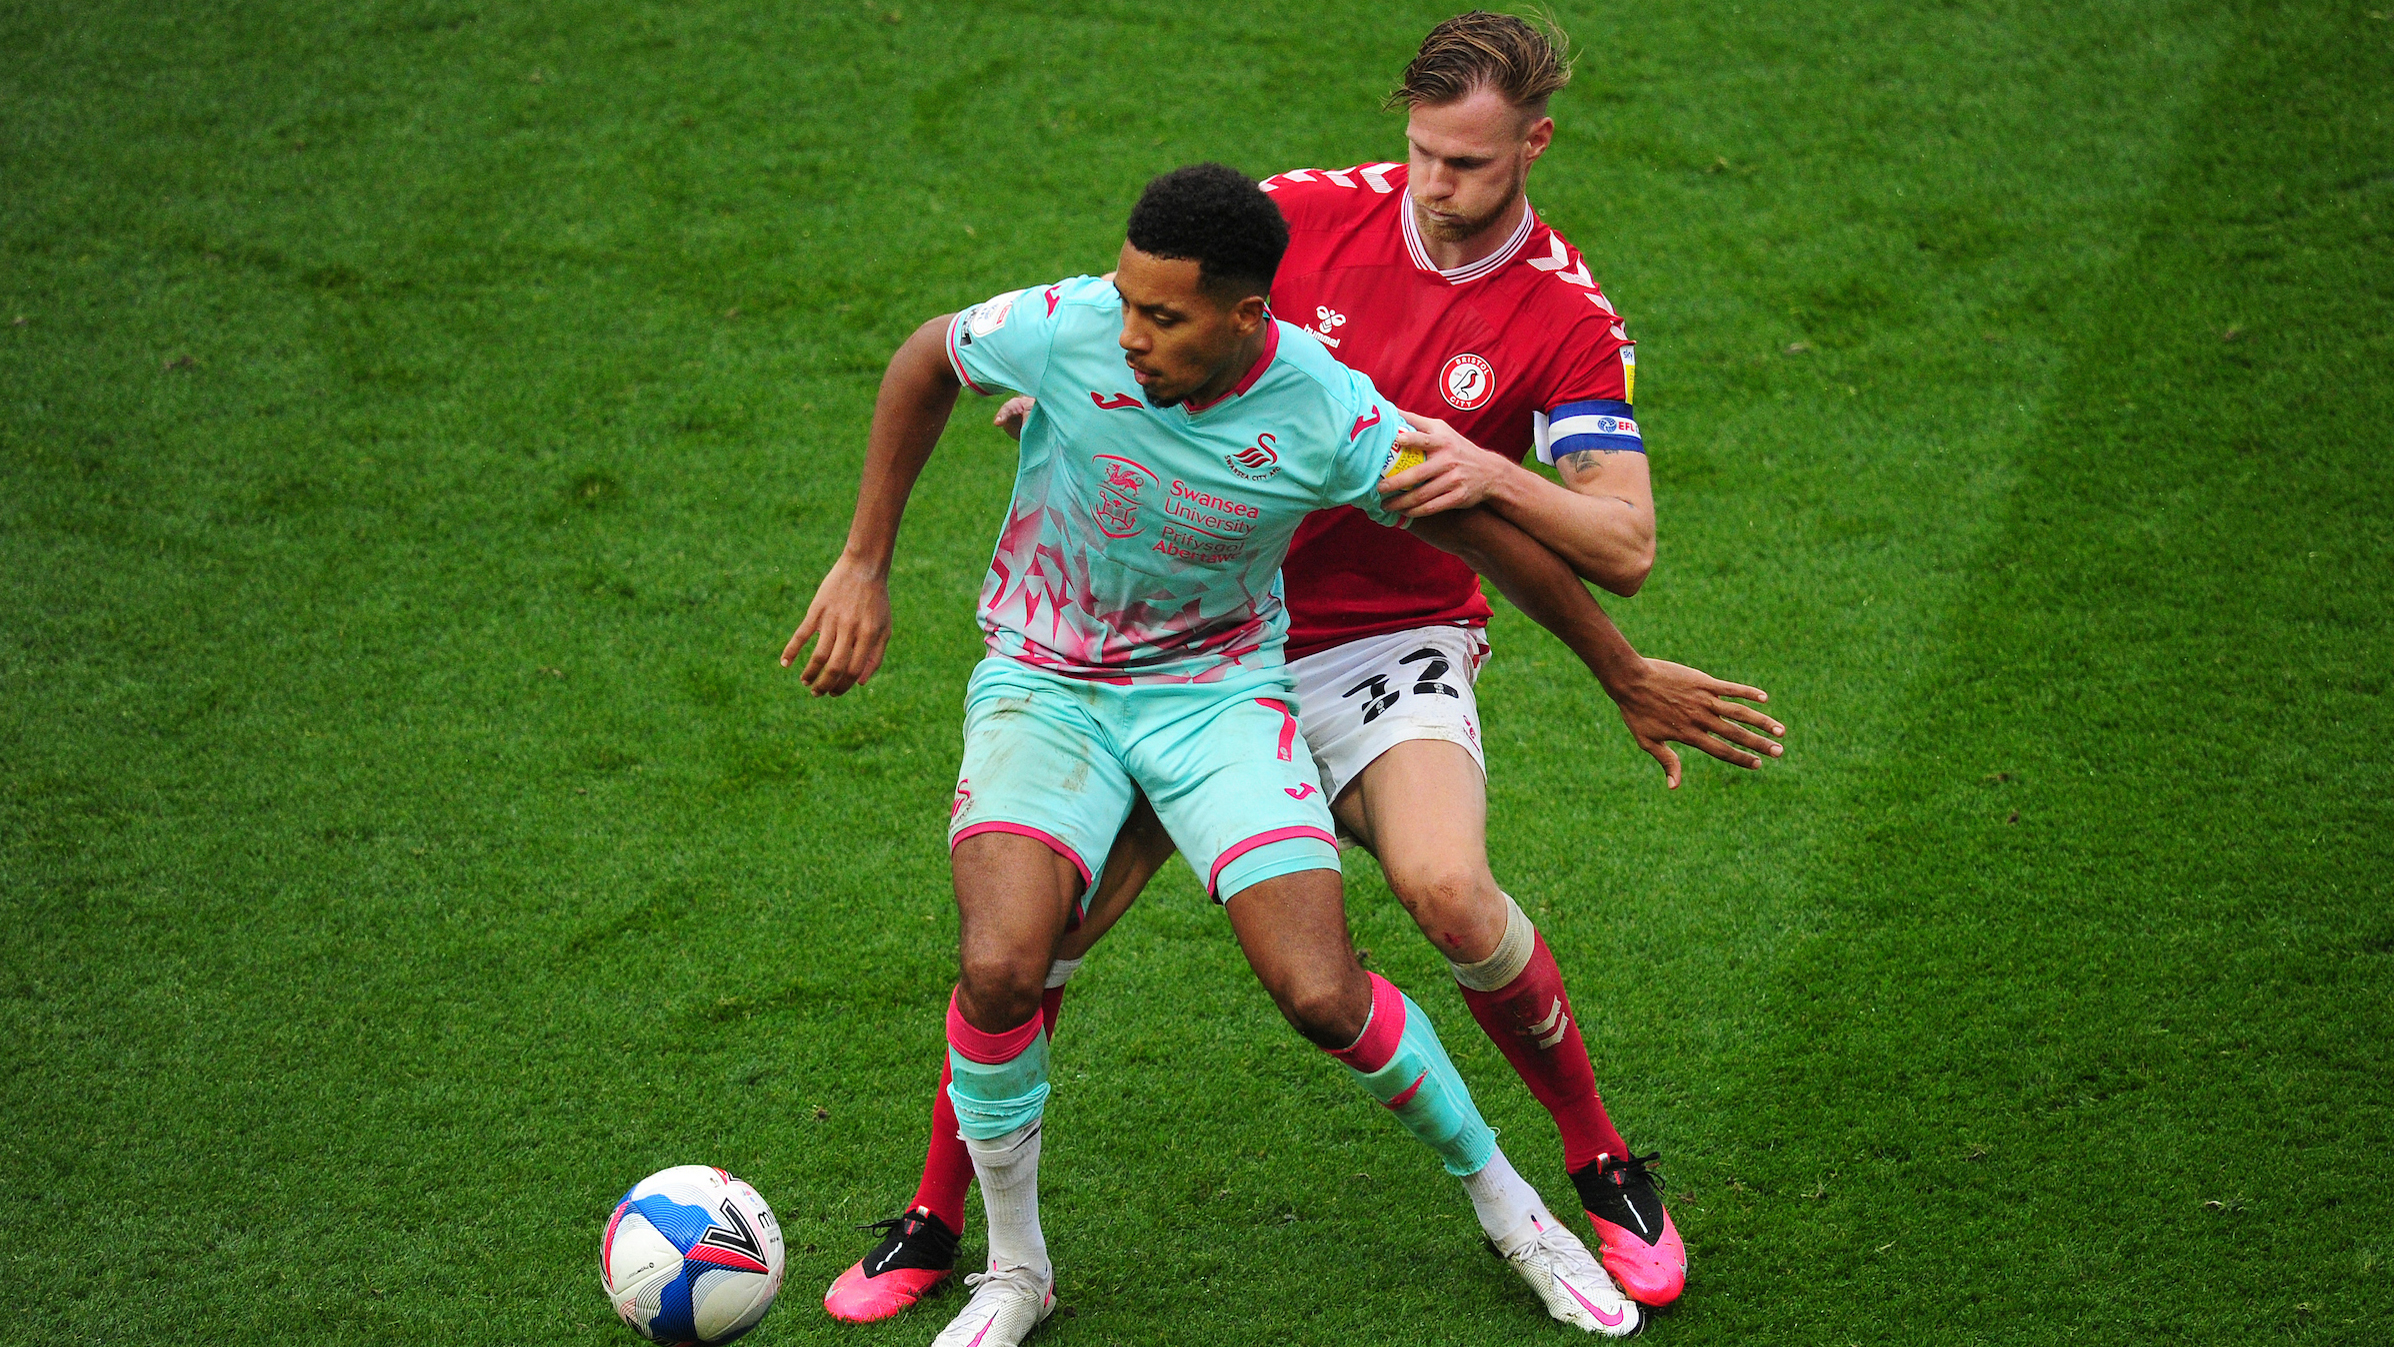 Korey Smith | We want to make the most of home double-header | Swansea